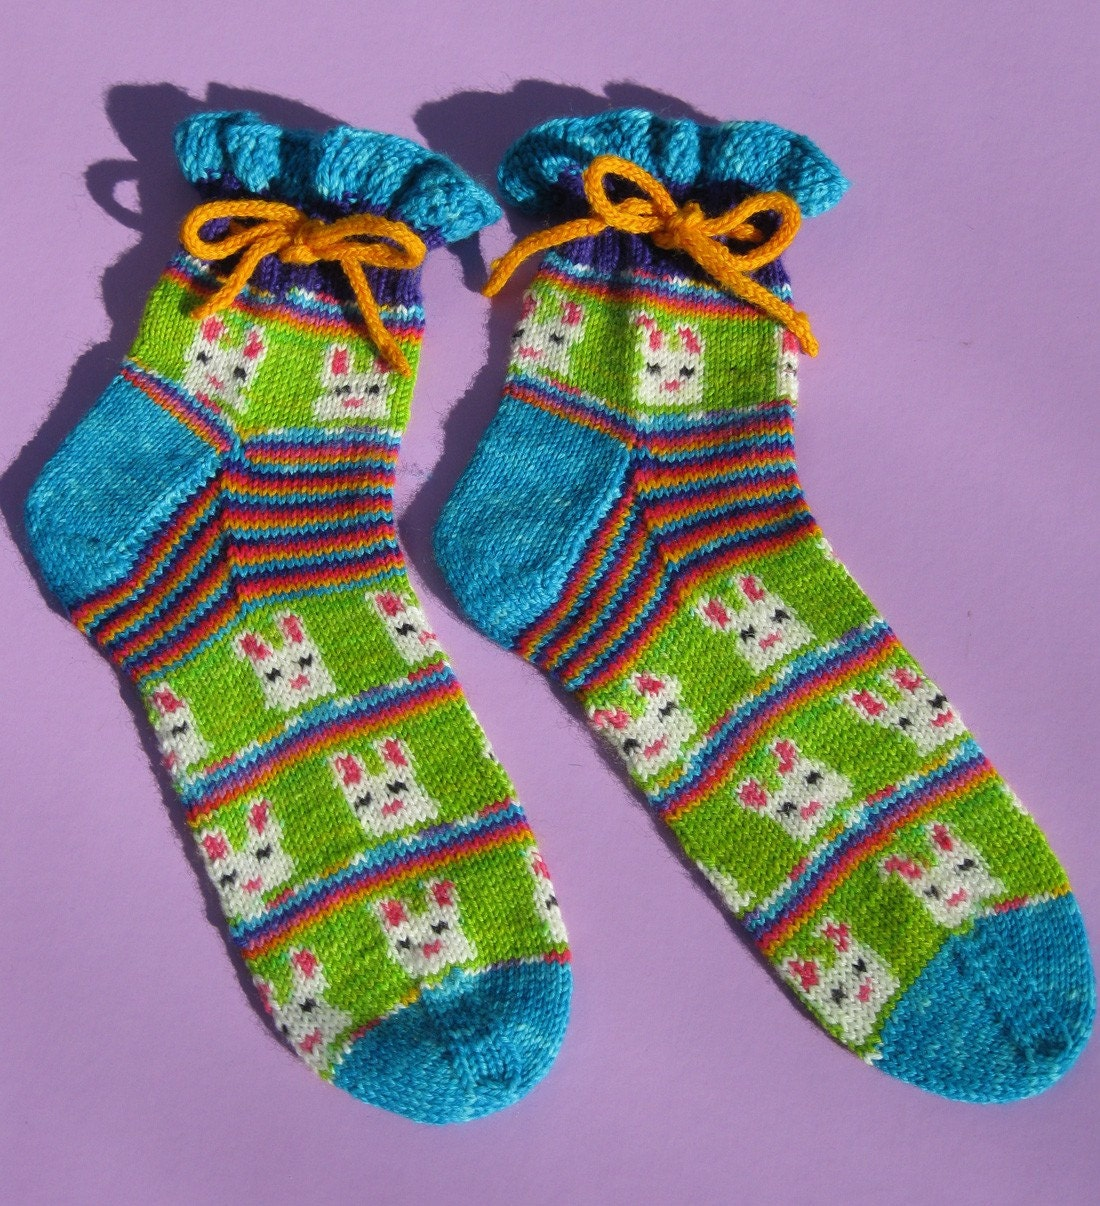 Pre-order - Easter Bunny self striping and patterning picture sock yarn kit with 4 solid contrast colors